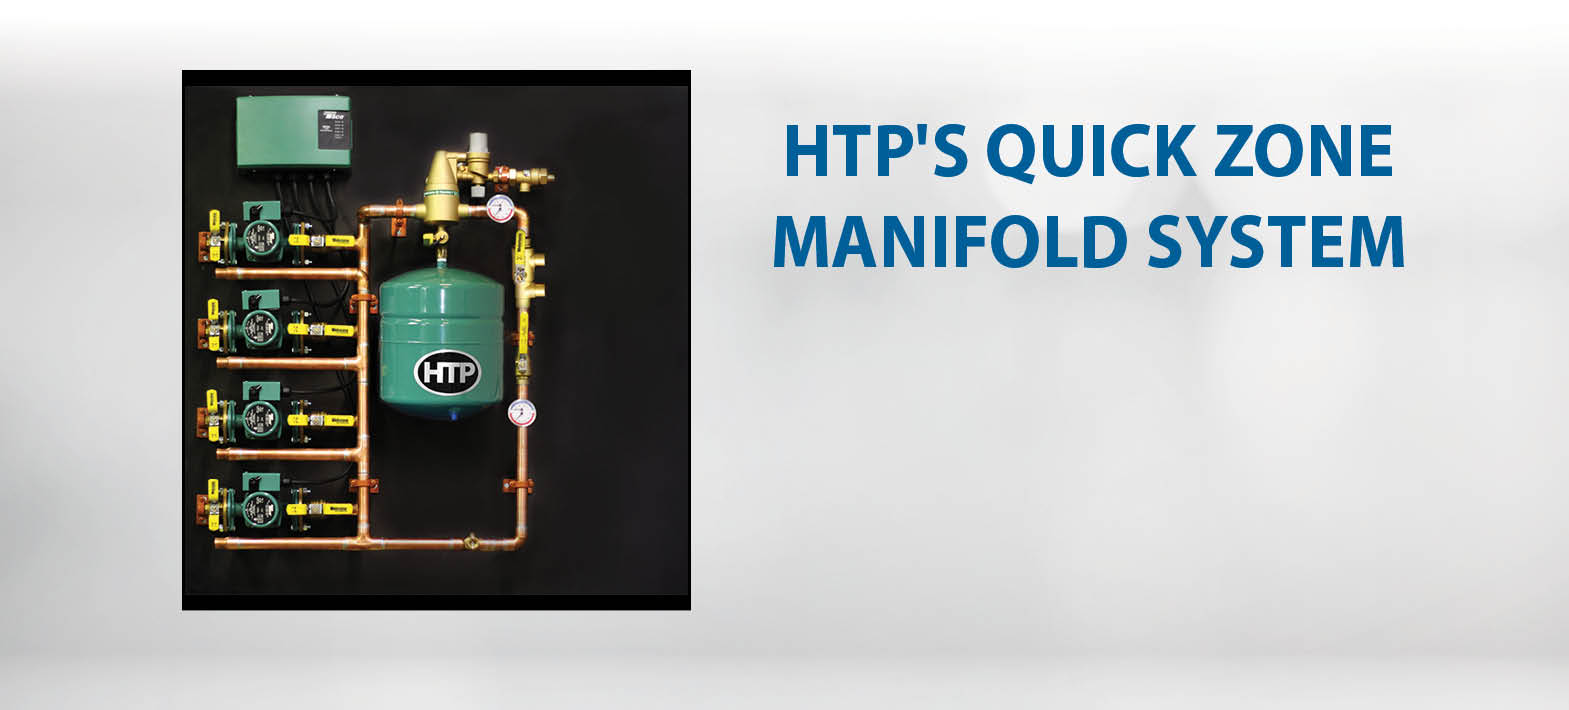 Quick Zone Manifold System